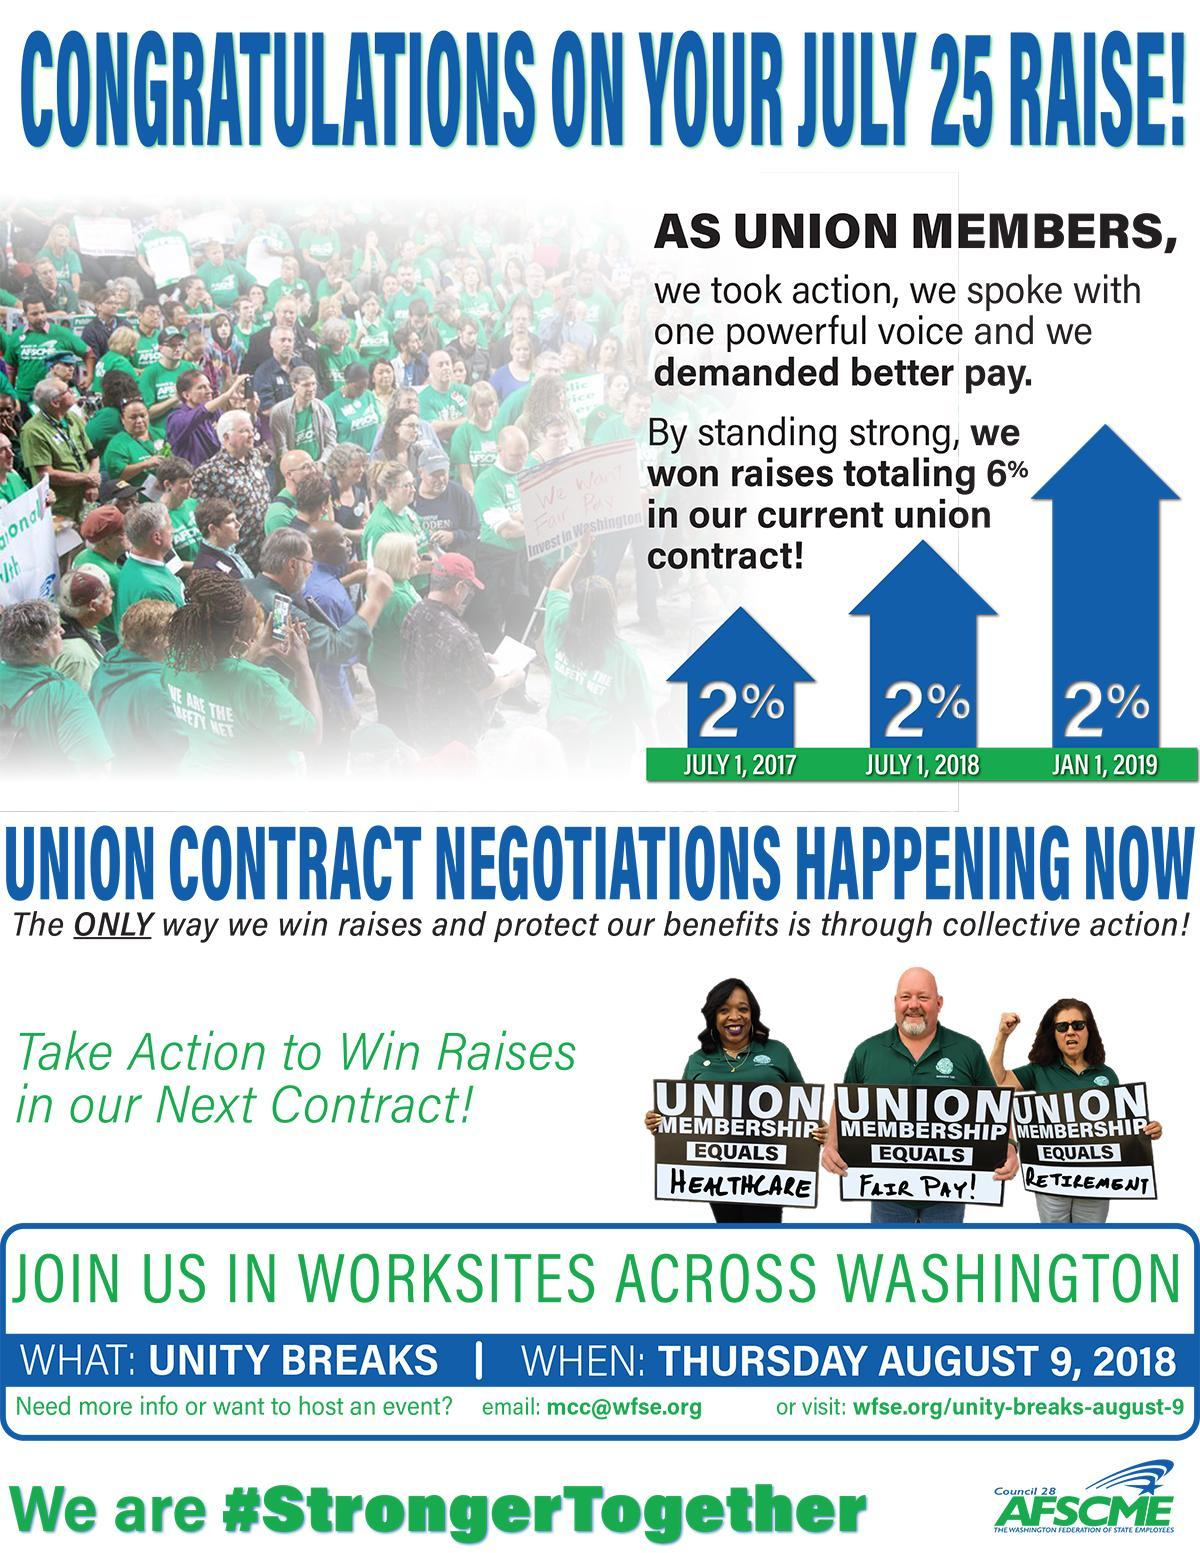 AUG 9 Unity Breaks handout